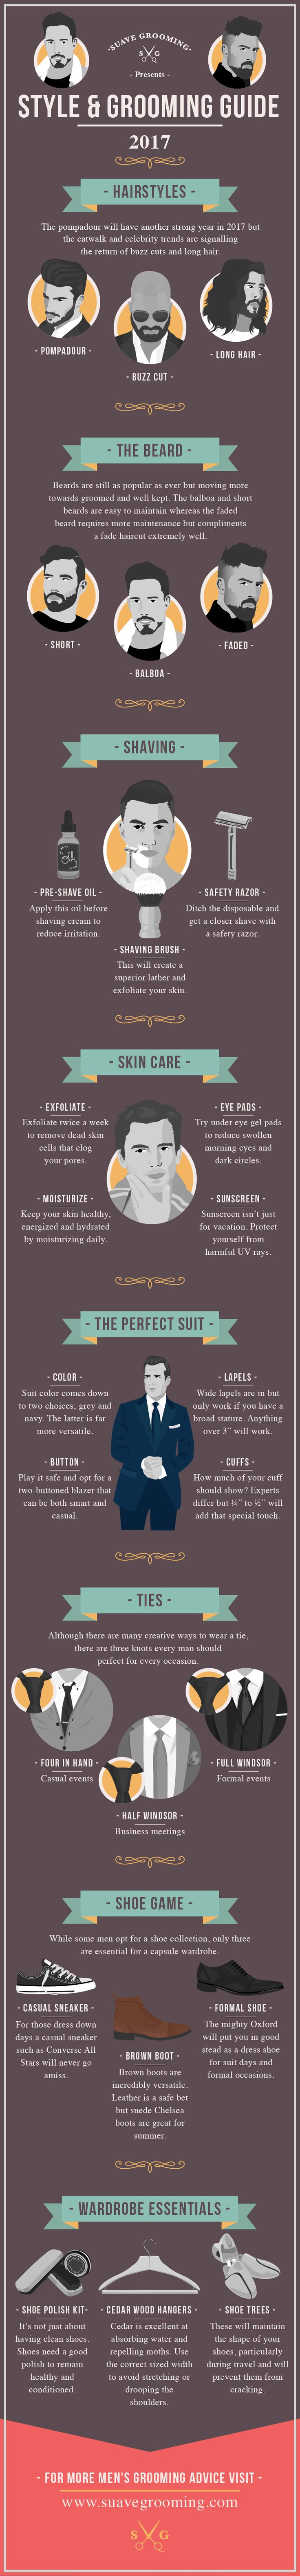 Style And Grooming Guide 2017 #Infographic #StyleAndGrooming